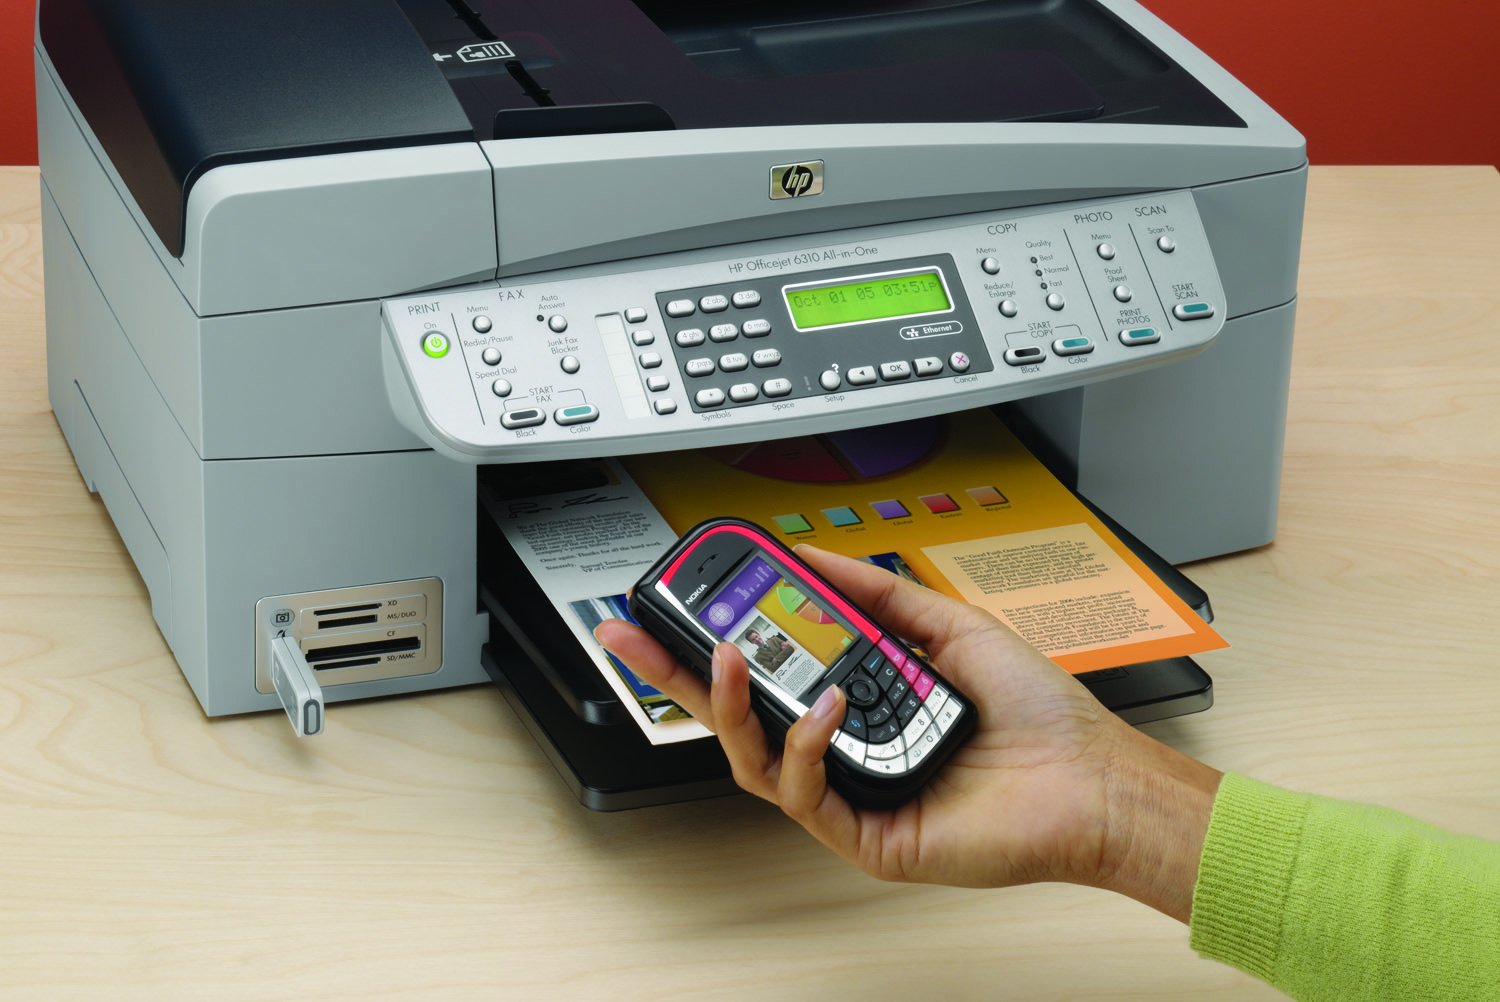 How to Scan a Document Into Word From a HP Officejet